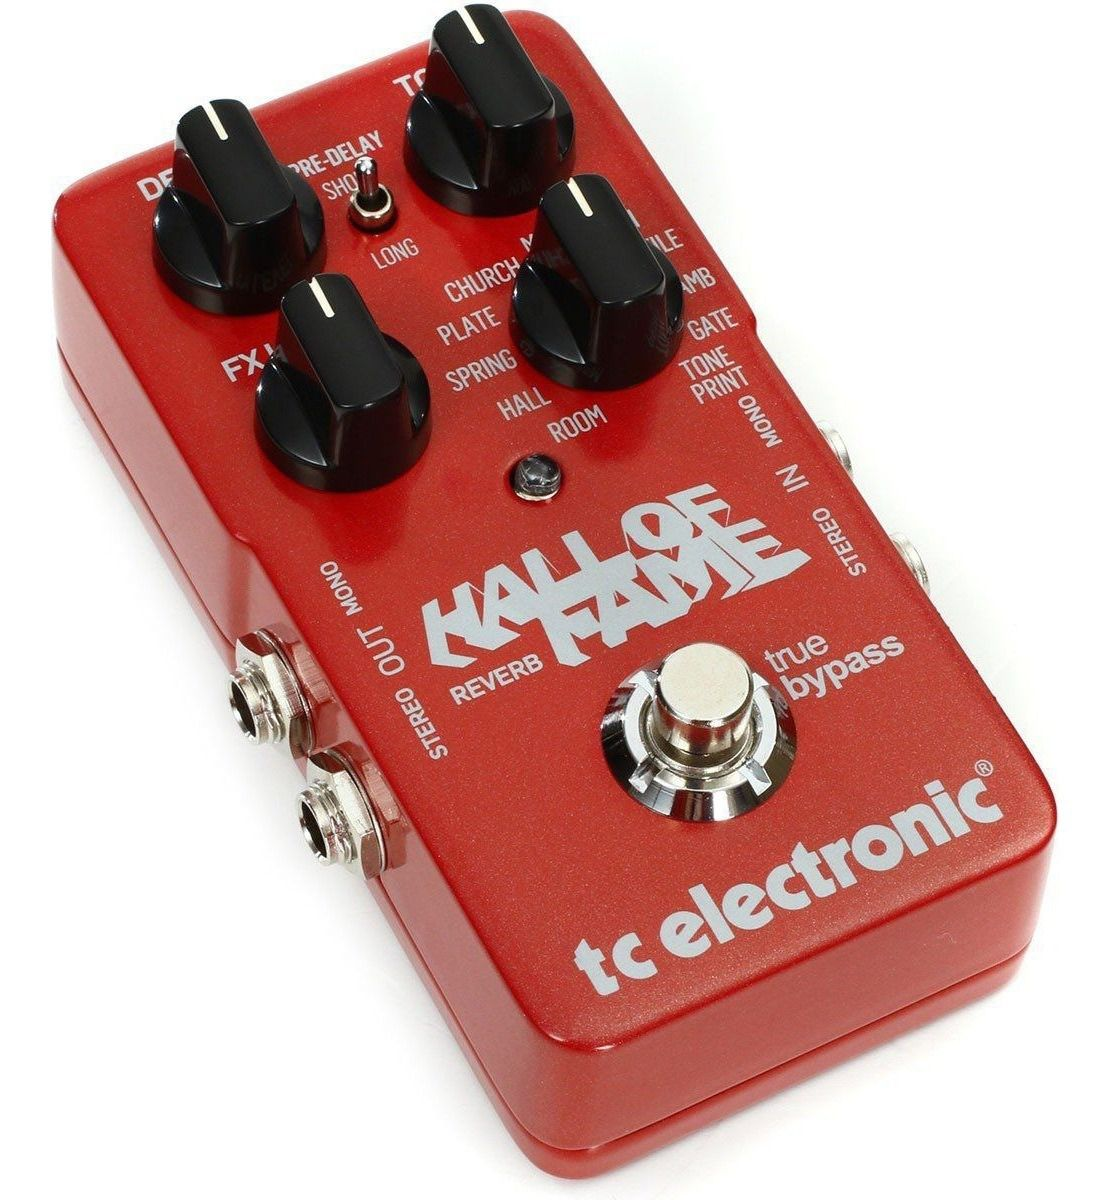 [Mostruário] Pedal Guitarra Hall Of Fame Reverb - TC Electronic